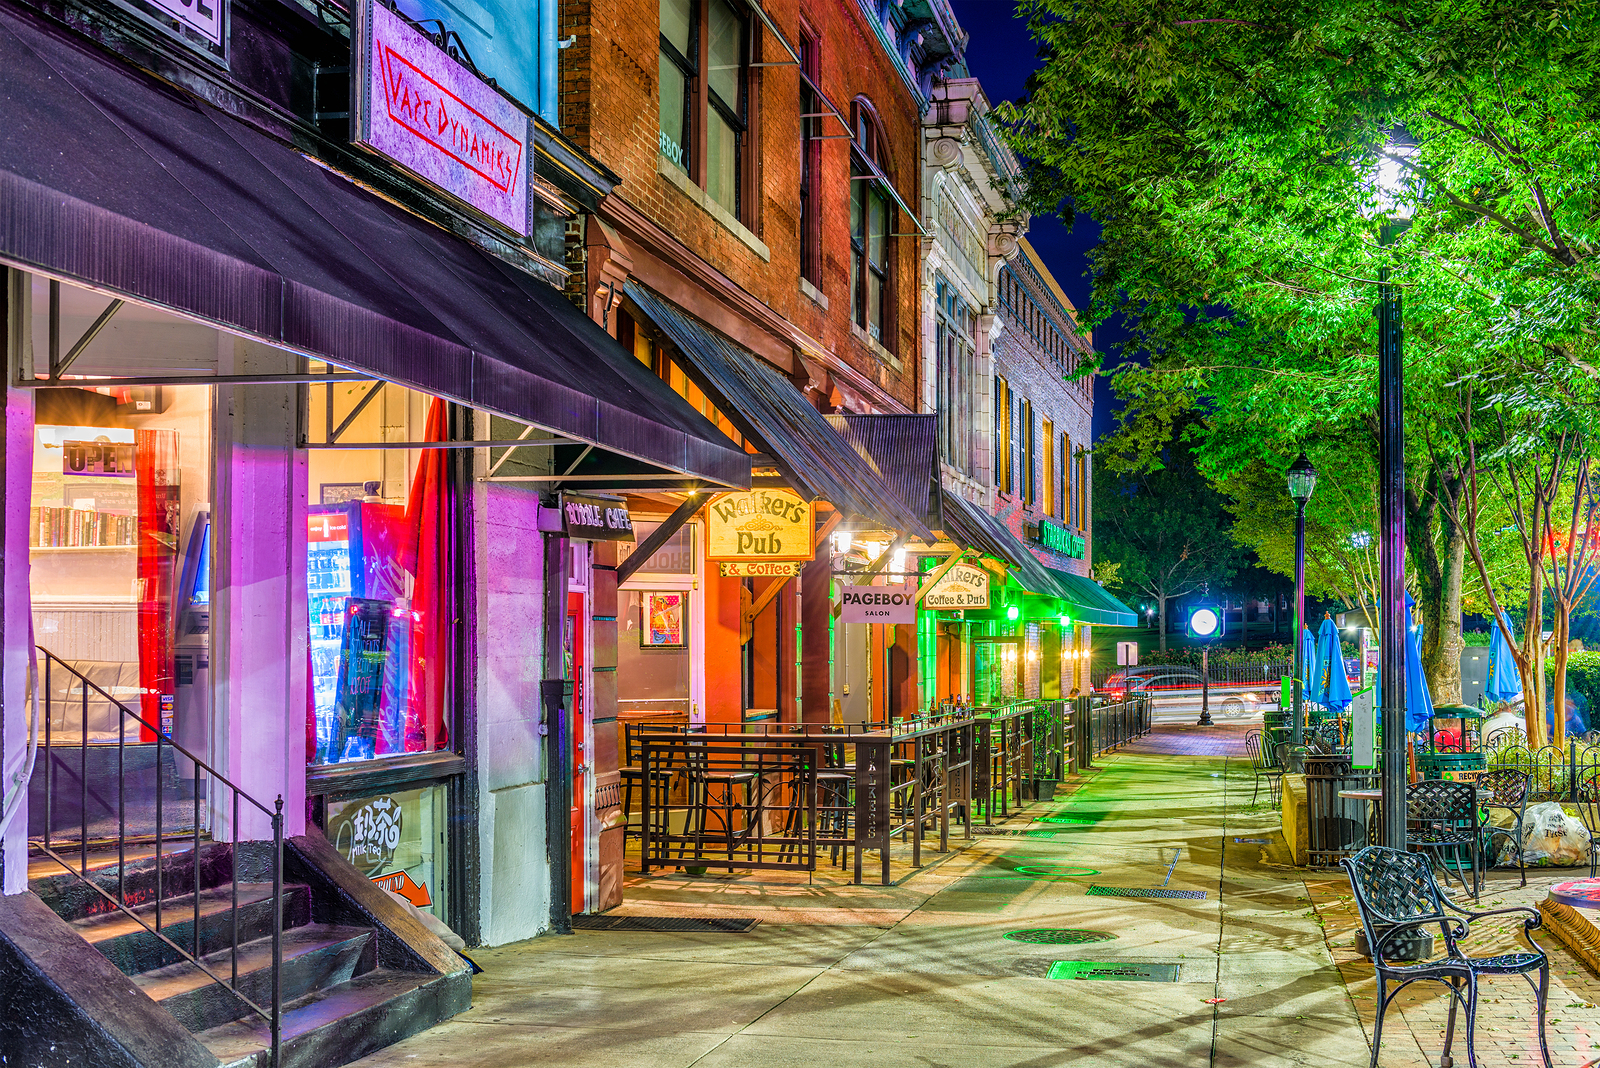 ATHENS, GEORGIA - AUGUST 13, 2017: Shops and bars along College Avenue in downtown Athens at night.